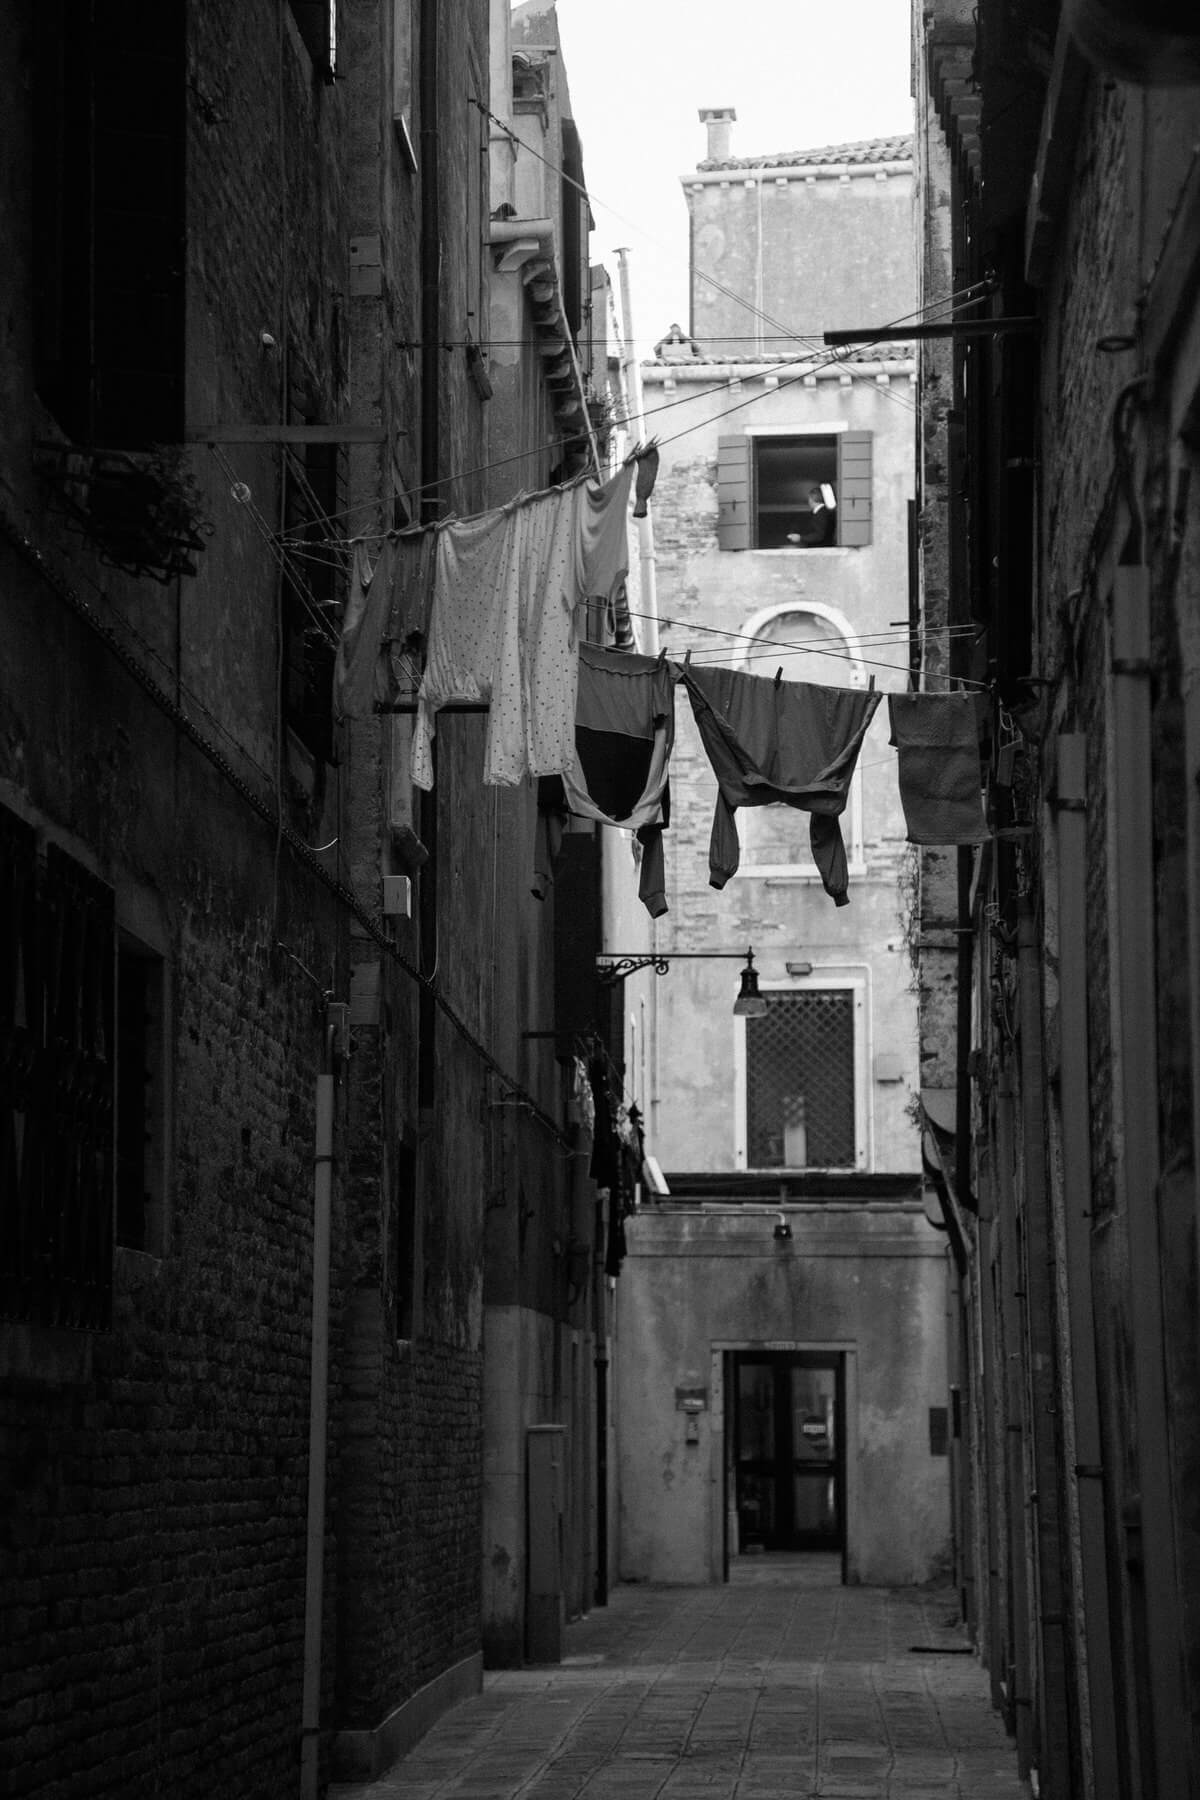 Venice-Italy-black-and-white-fine-art-photography-by-Studio-L-photographer-Laura-Schneider-_3823